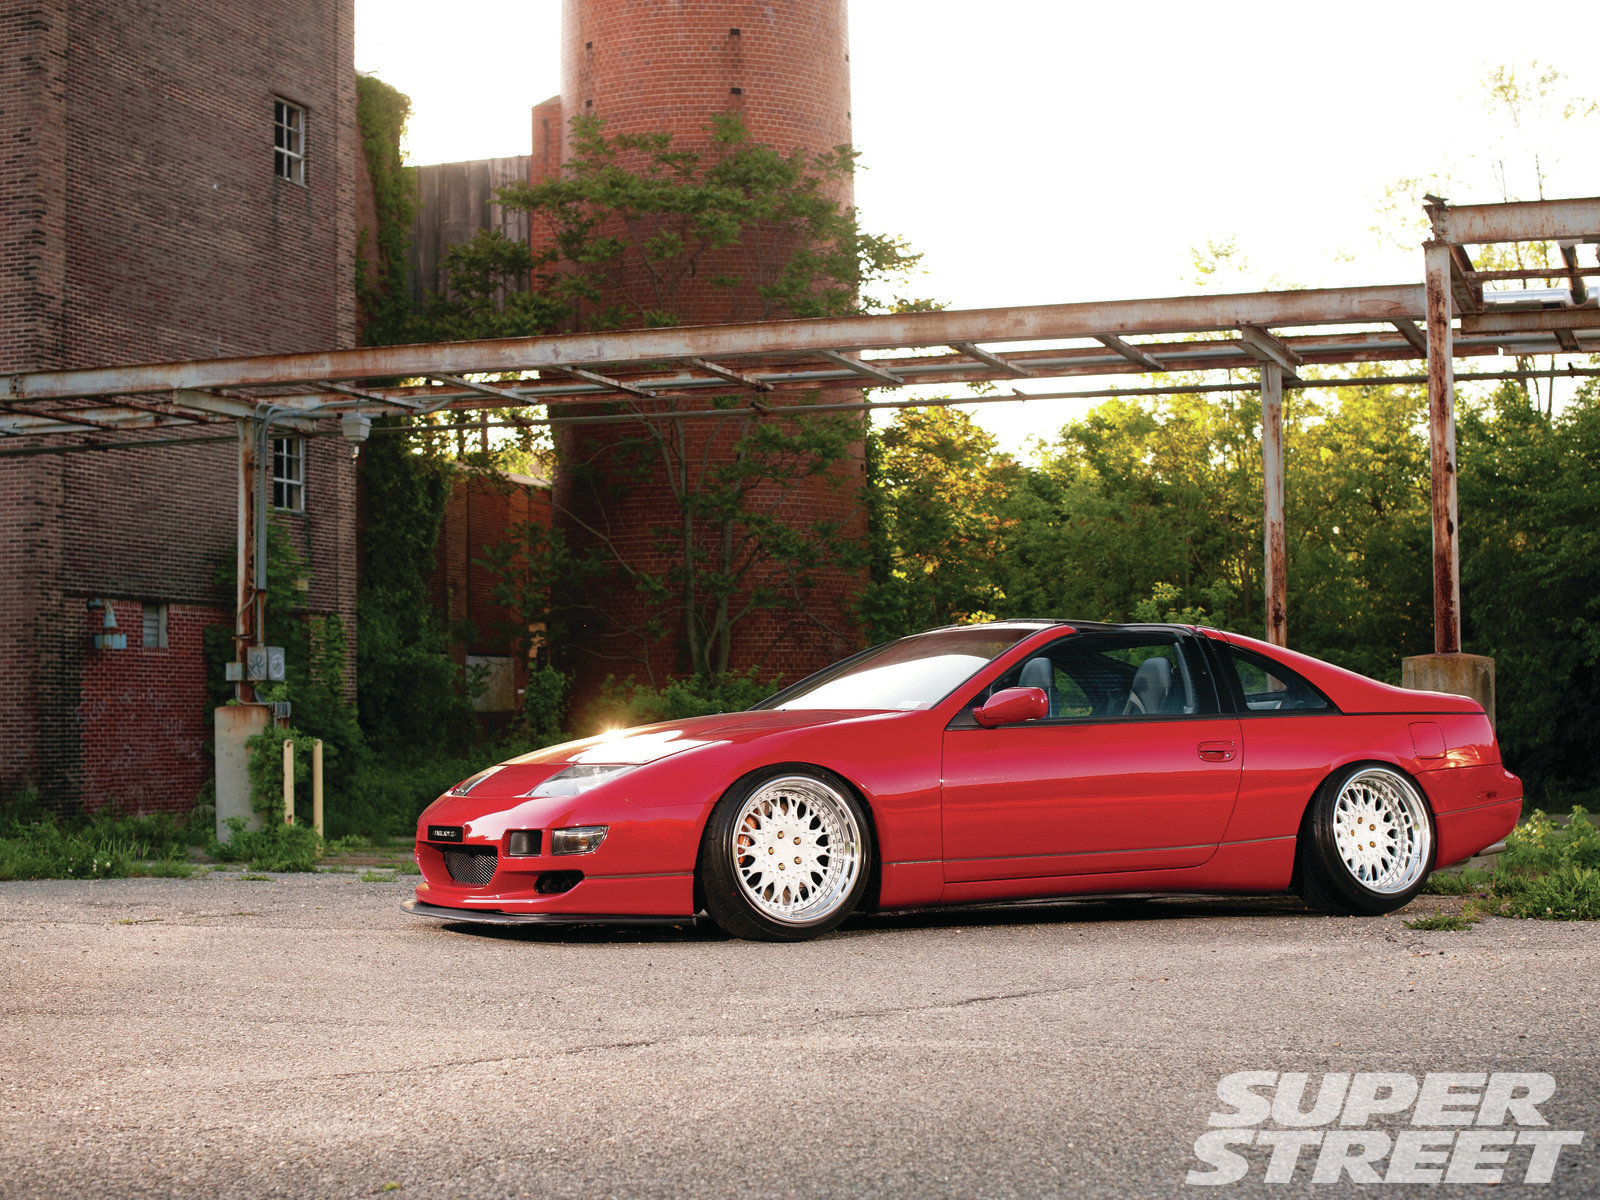 3dtuning Of Nissan 300zx Coupe 1990 3dtuning Com Unique On Line Car Configurator For More Than